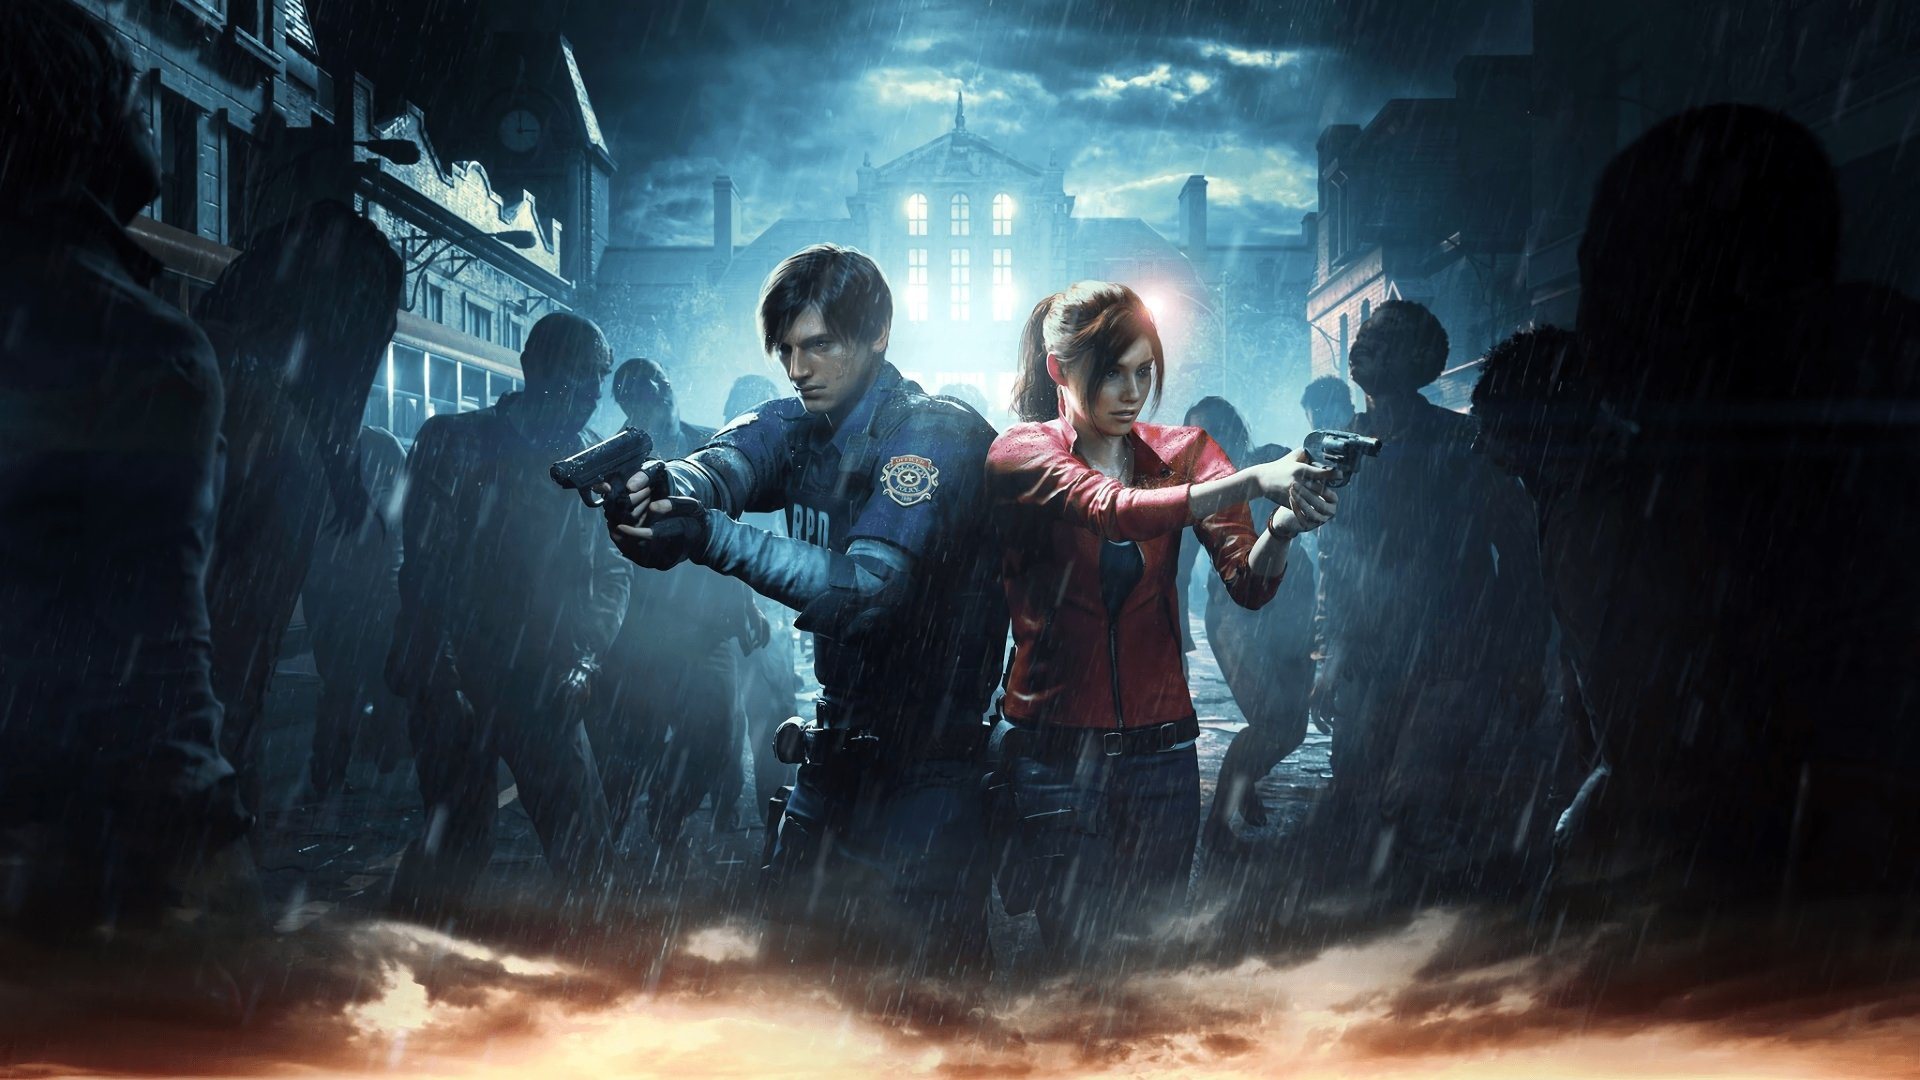 hunk resident evil 2 remake wallpaper hd